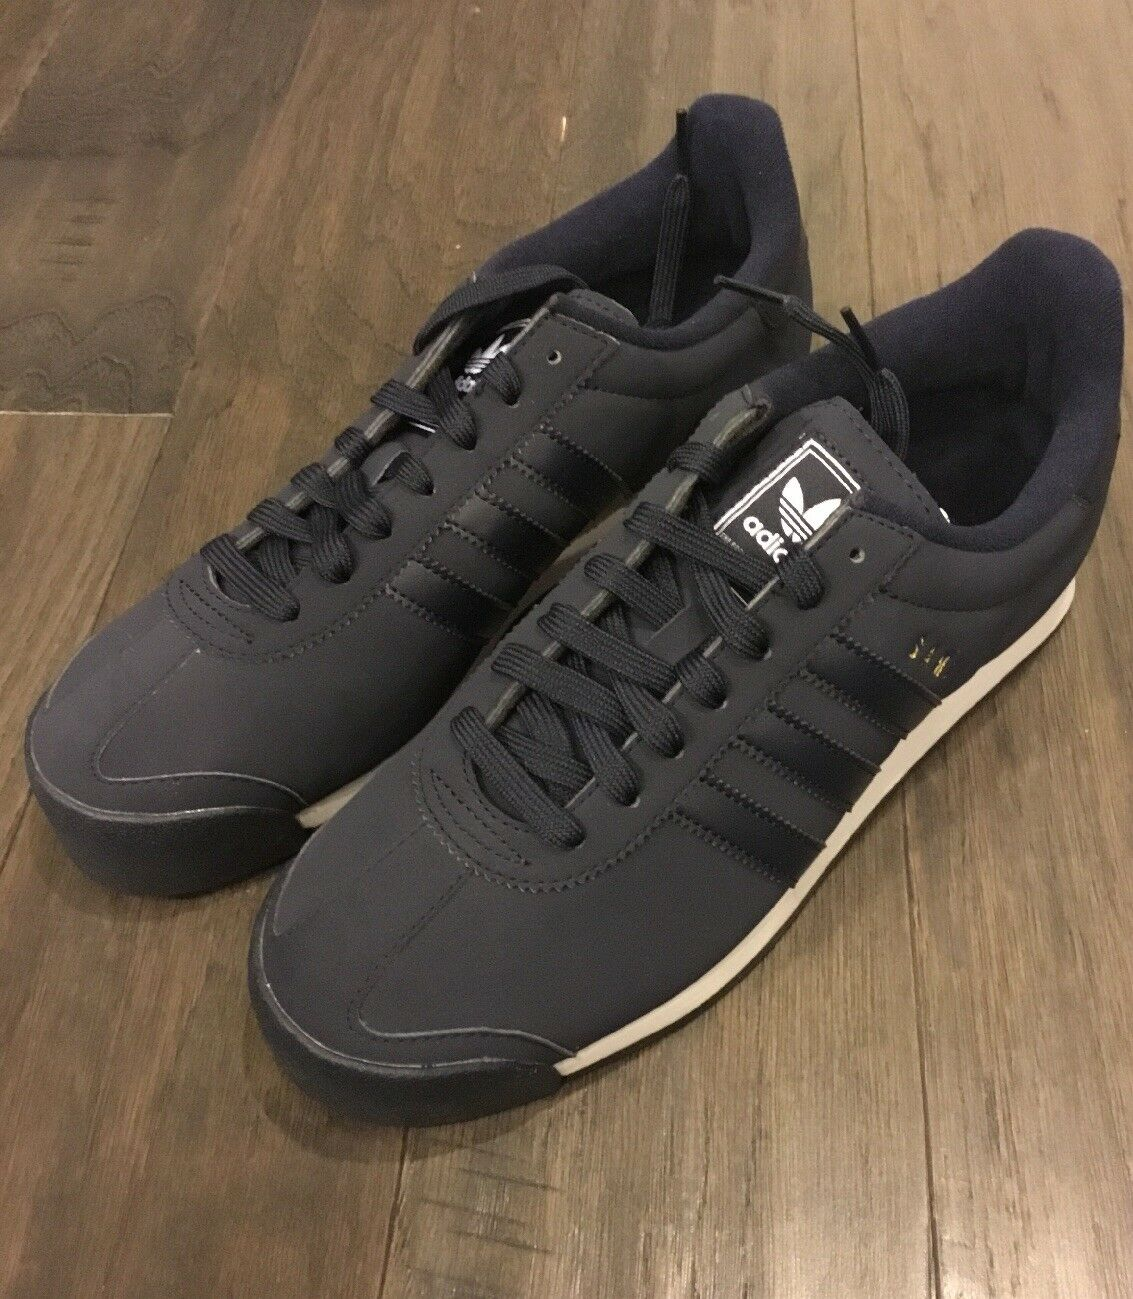 Adidas Samoa Men's shoes New in box size 9 BY3514ink bluee Sneakers